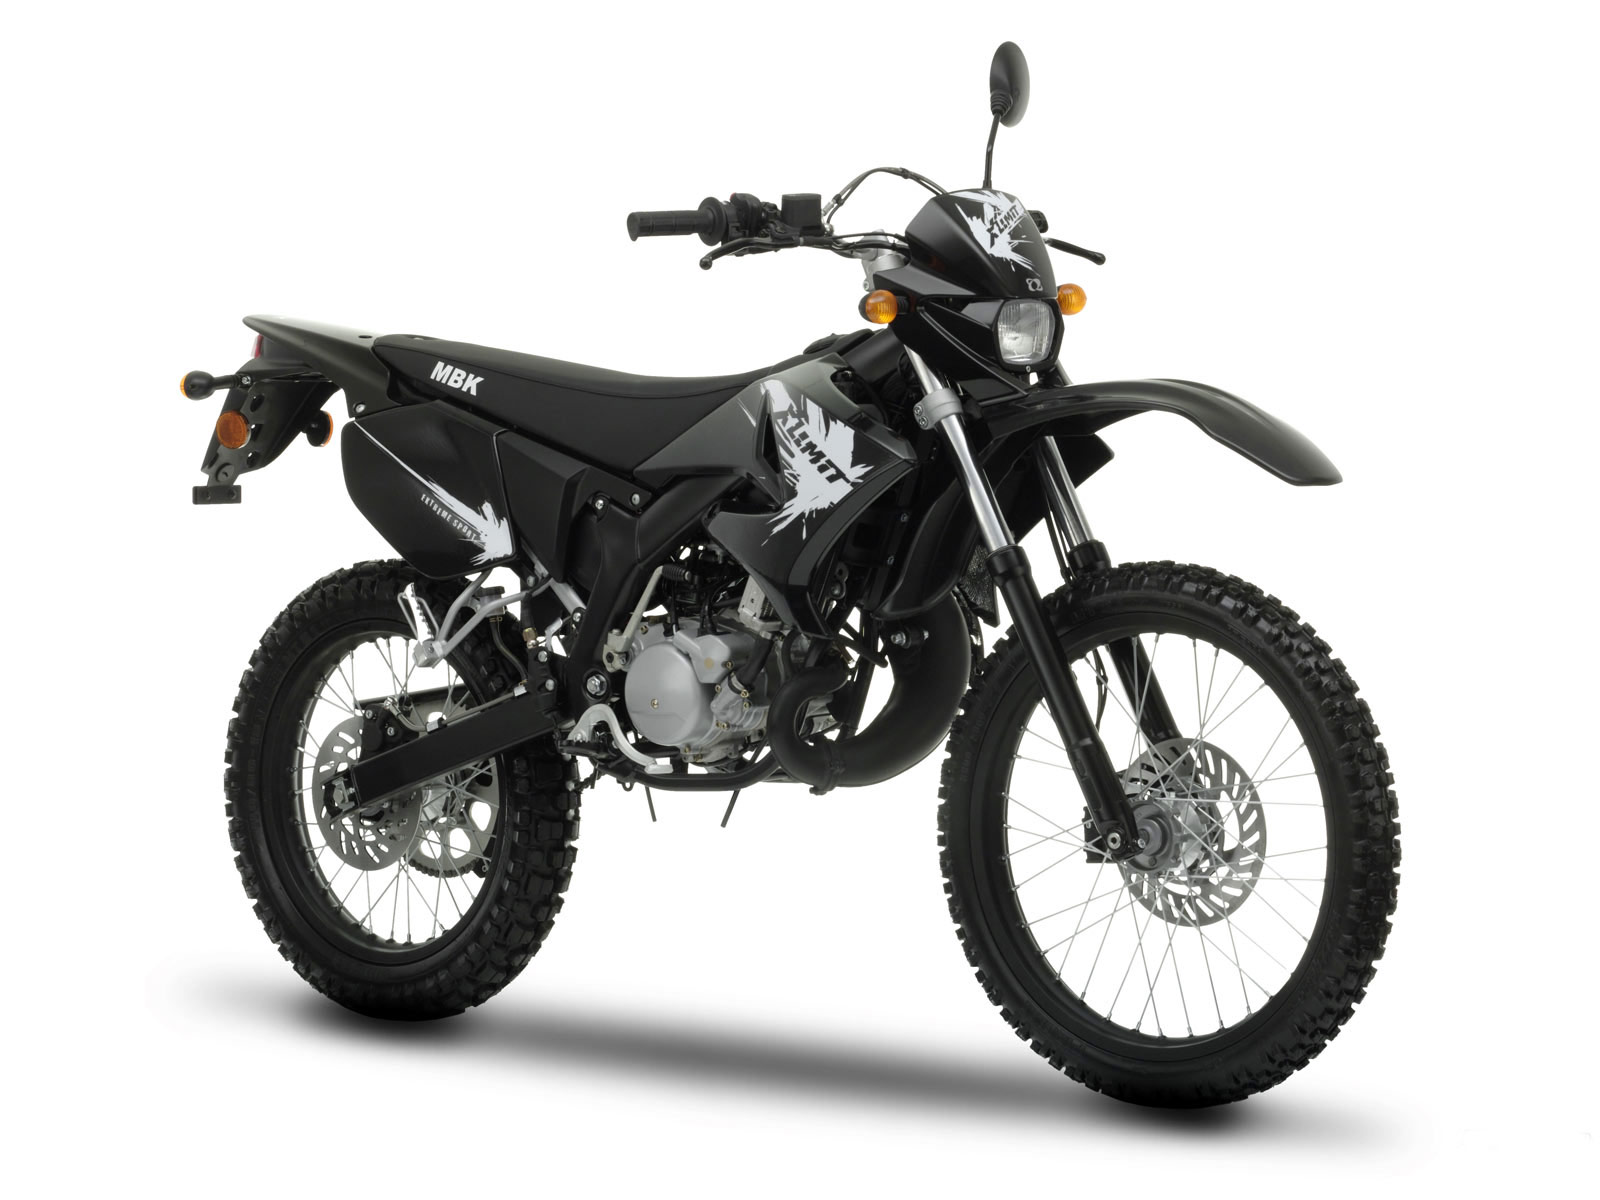 NEW MBK X-LIMIT ENDURO (2010) REVEALED title=